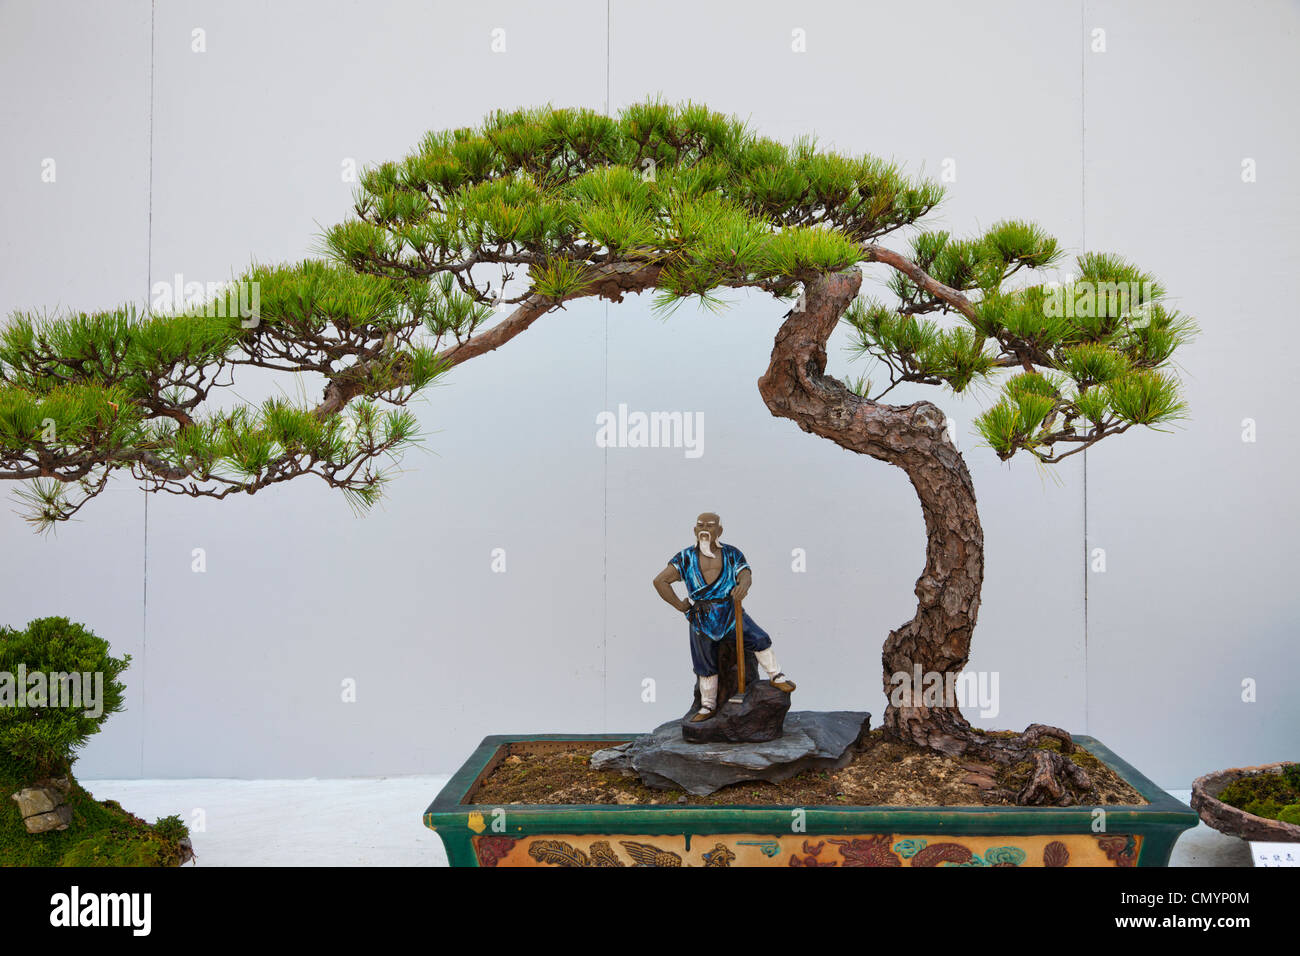 Bonsai Tree Hong Kong Stock Photos Amp Bonsai Tree Hong Kong Stock